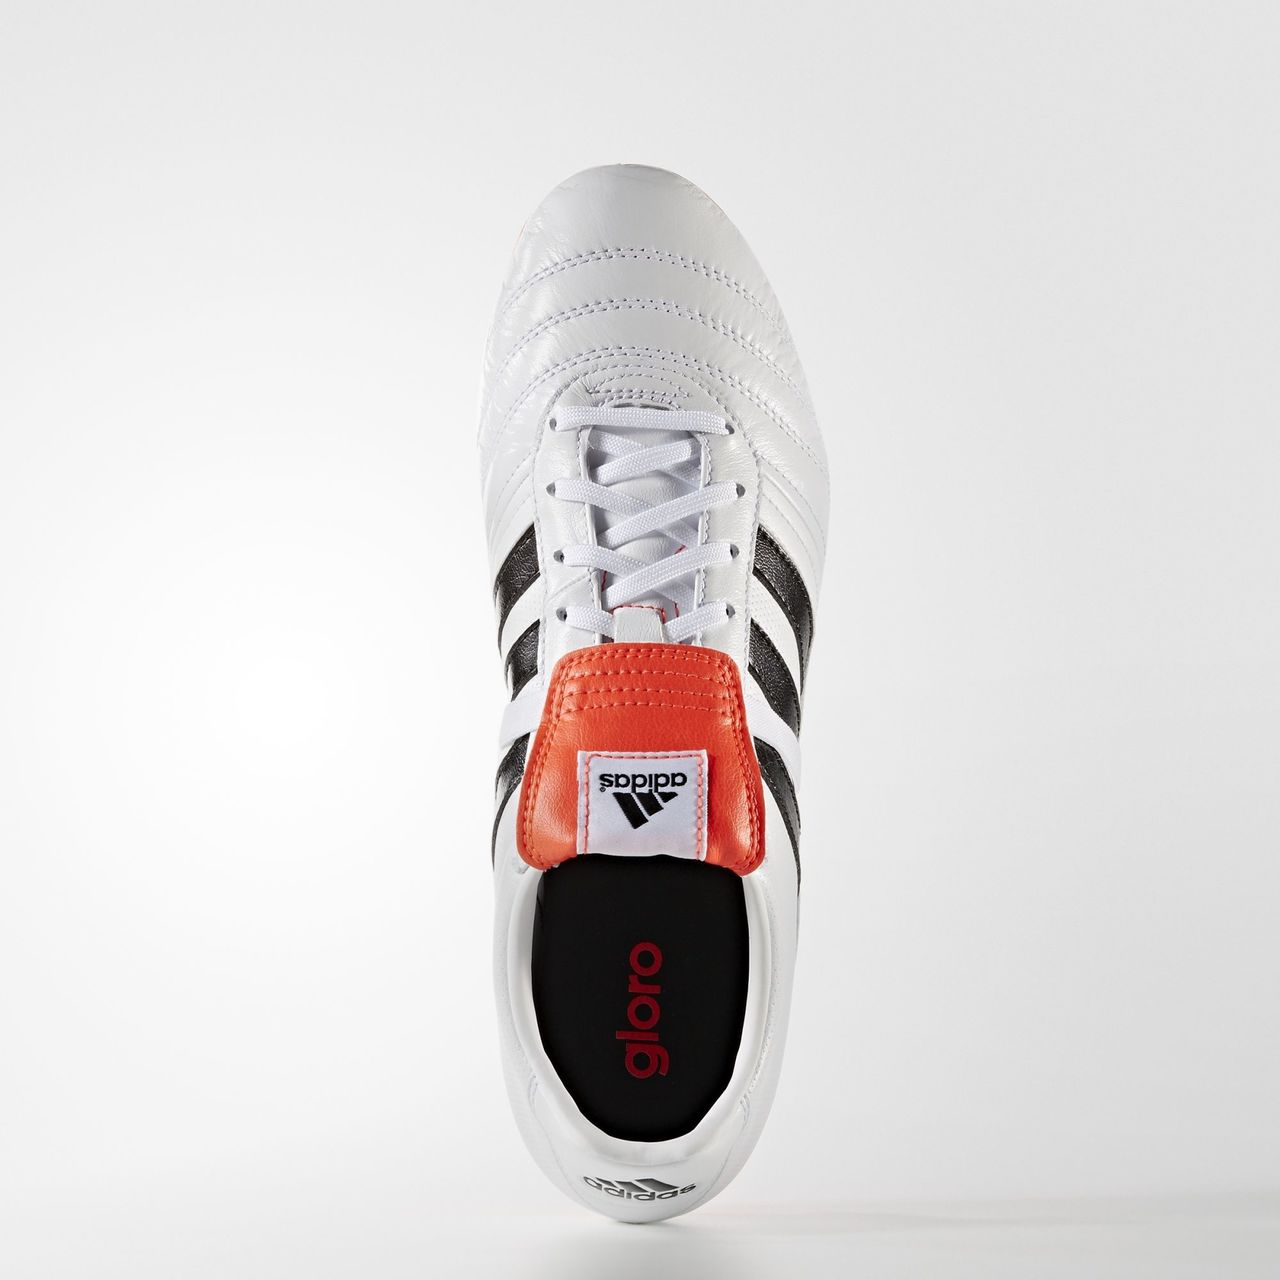 adidas Gloro 15.1 FG Mens Boots Firm Ground White